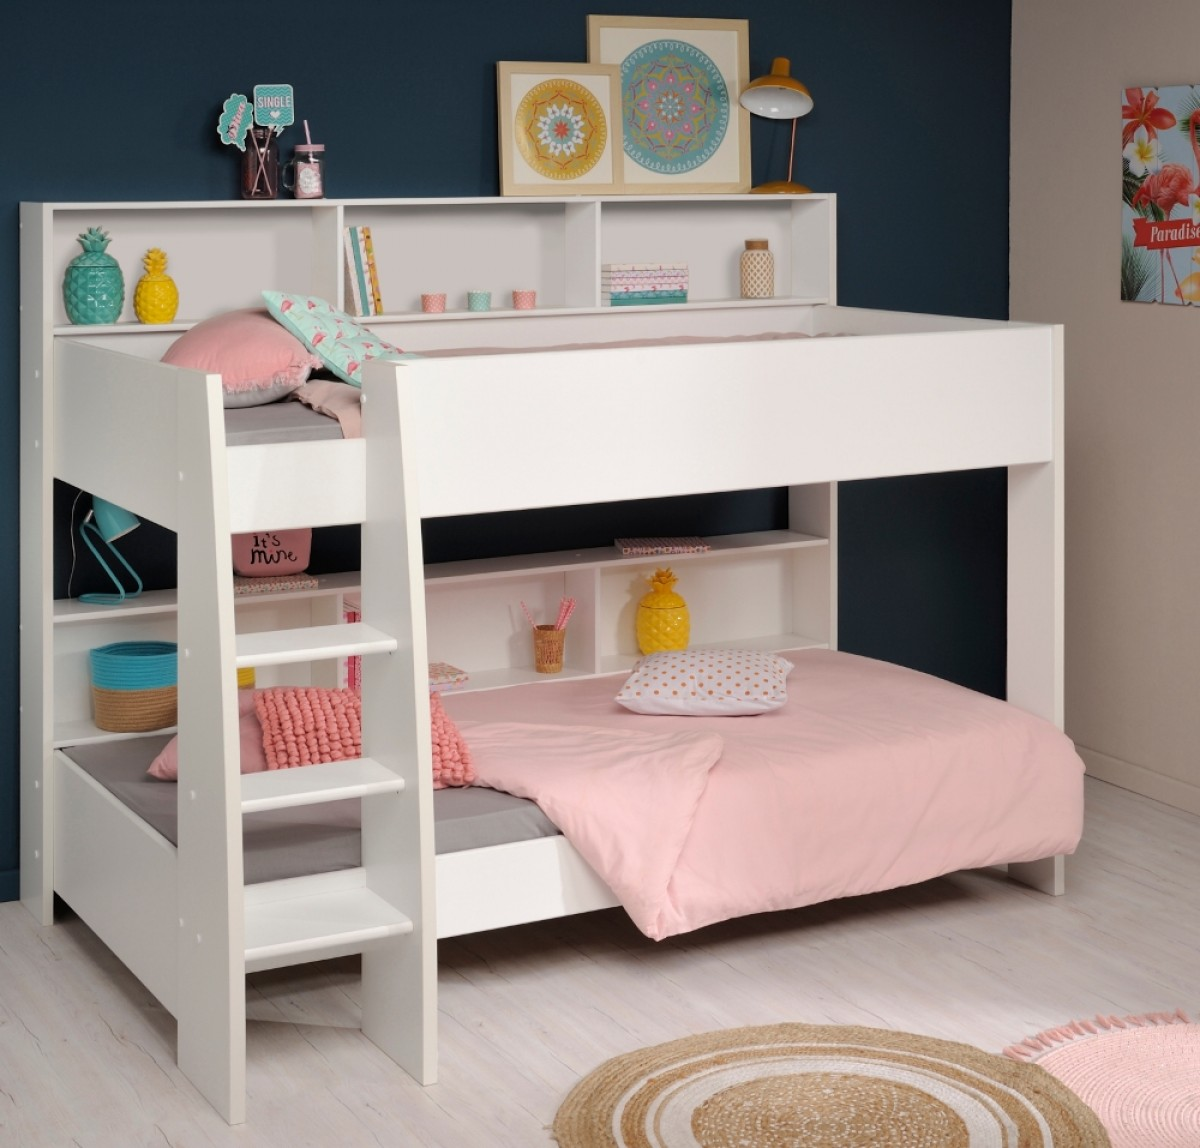 Tam Tam White and Oak Wooden Bunk Bed